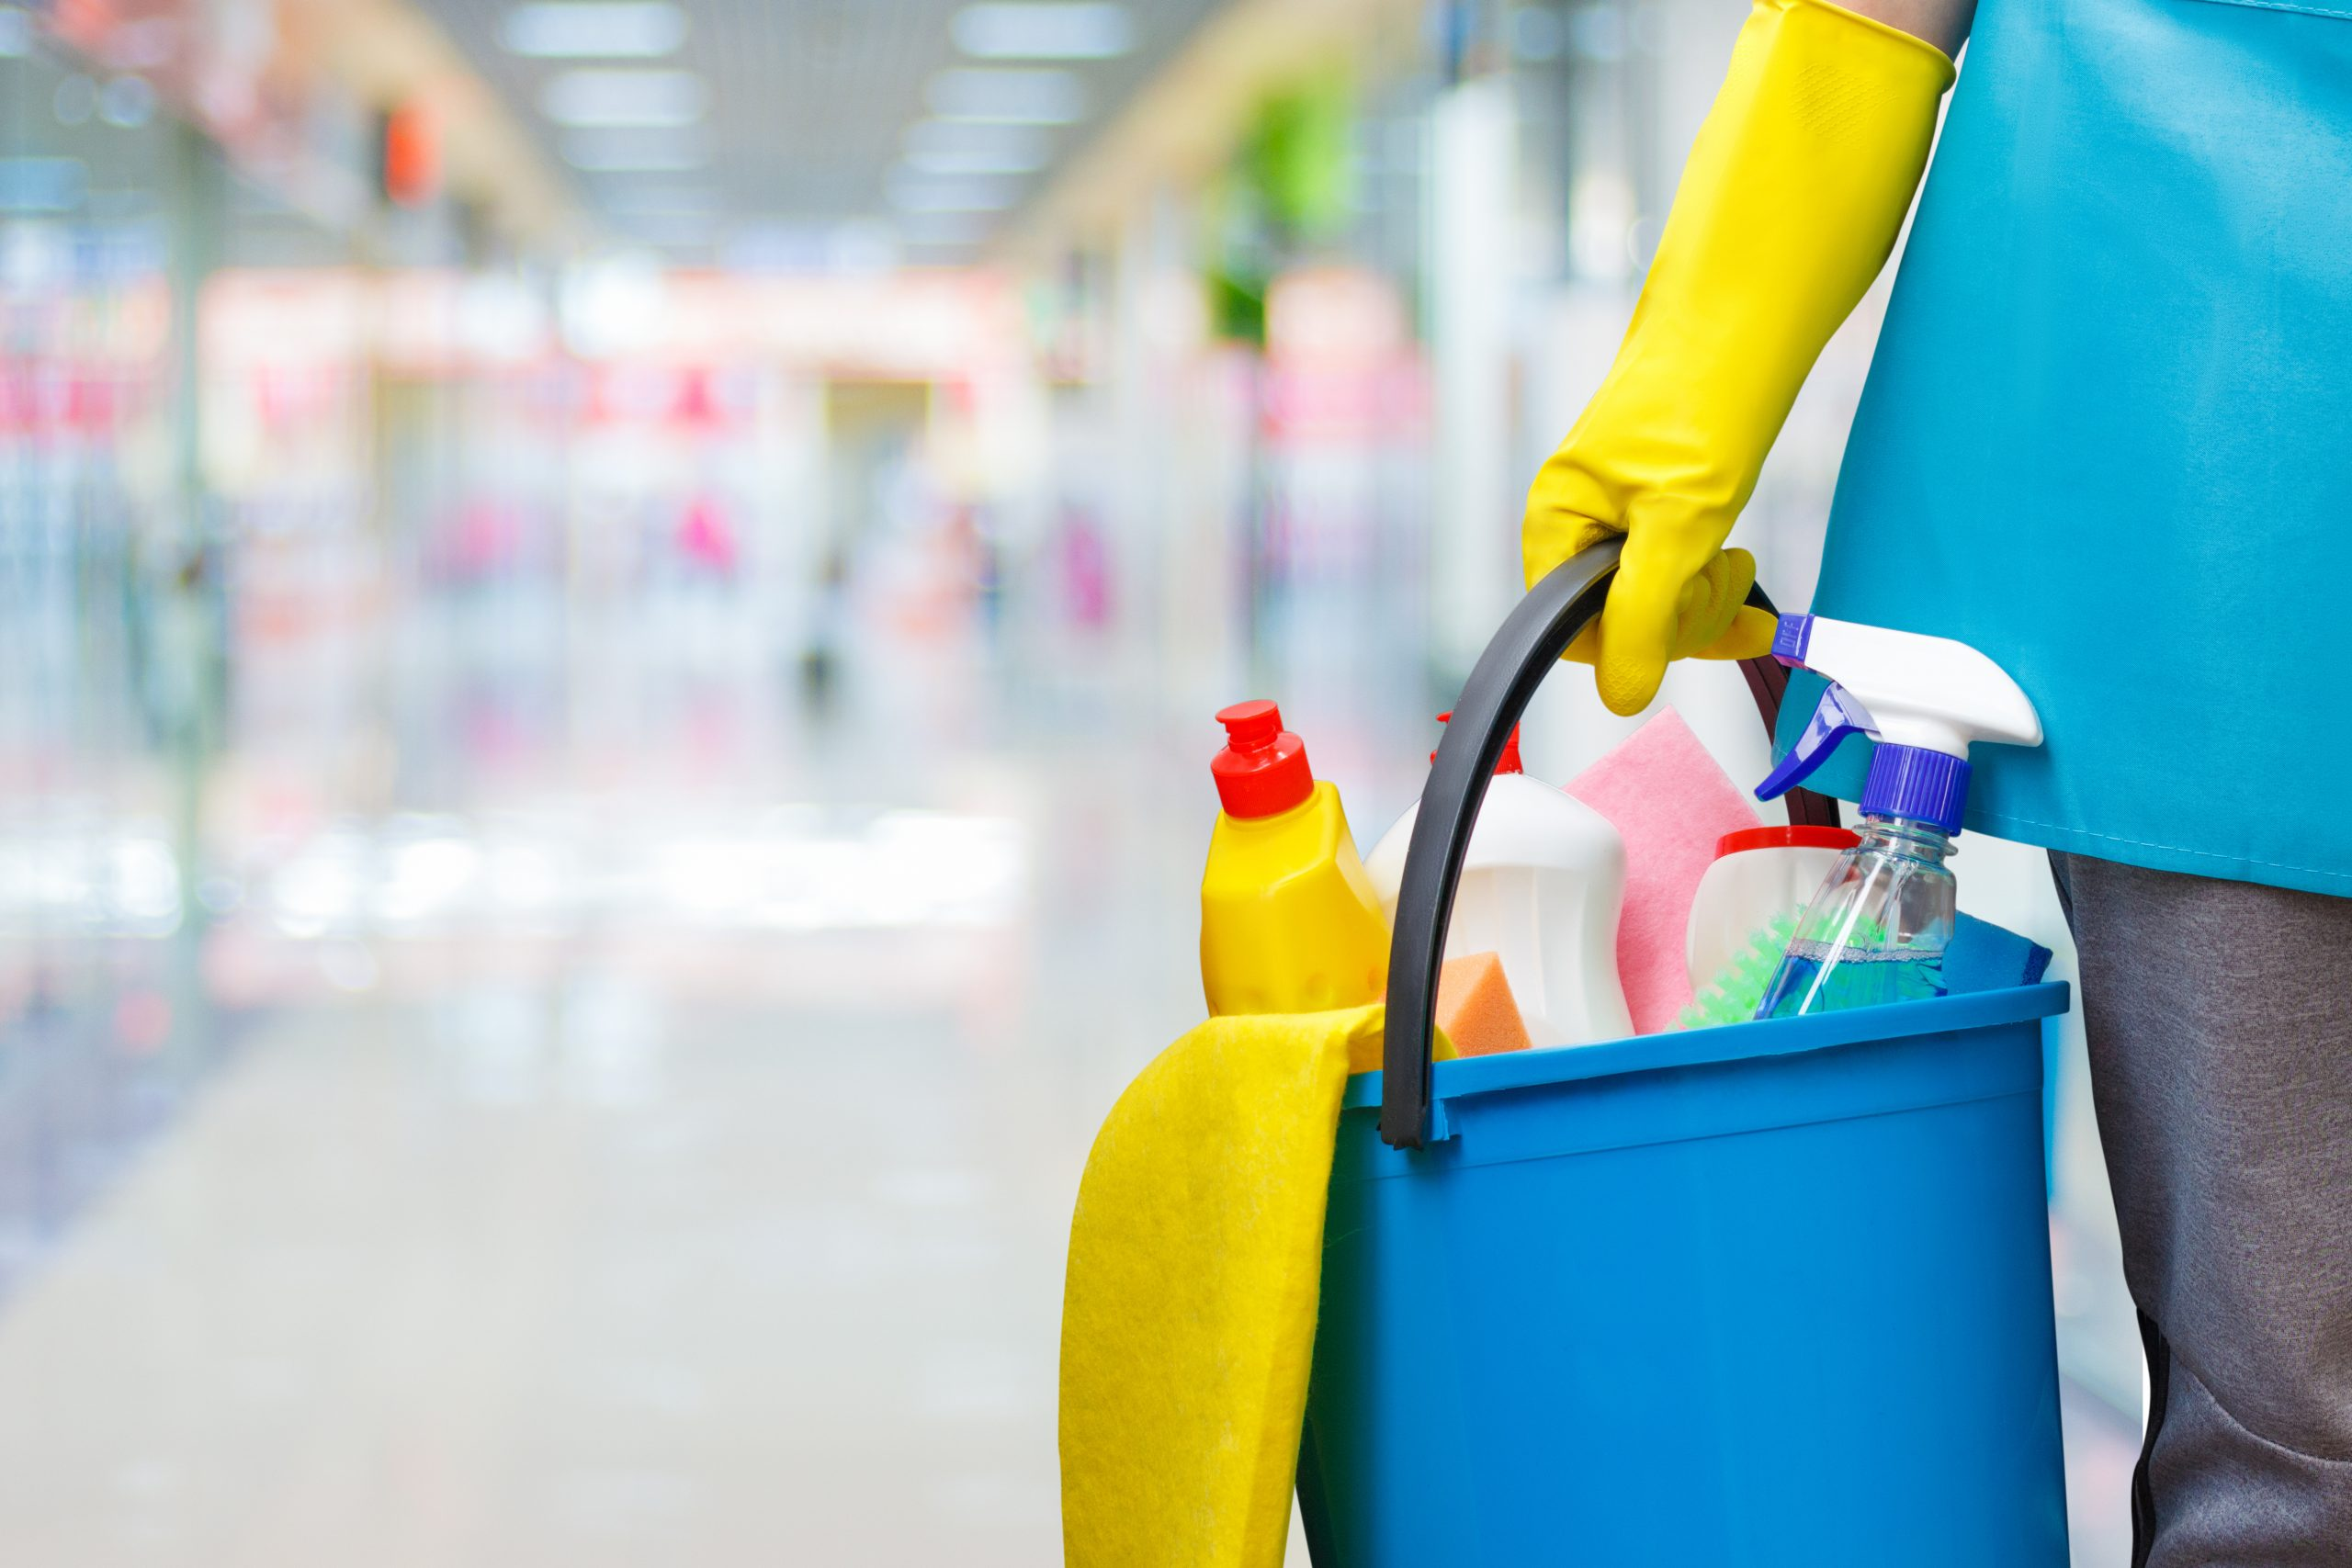 6. Purchase Cleaning Equipment